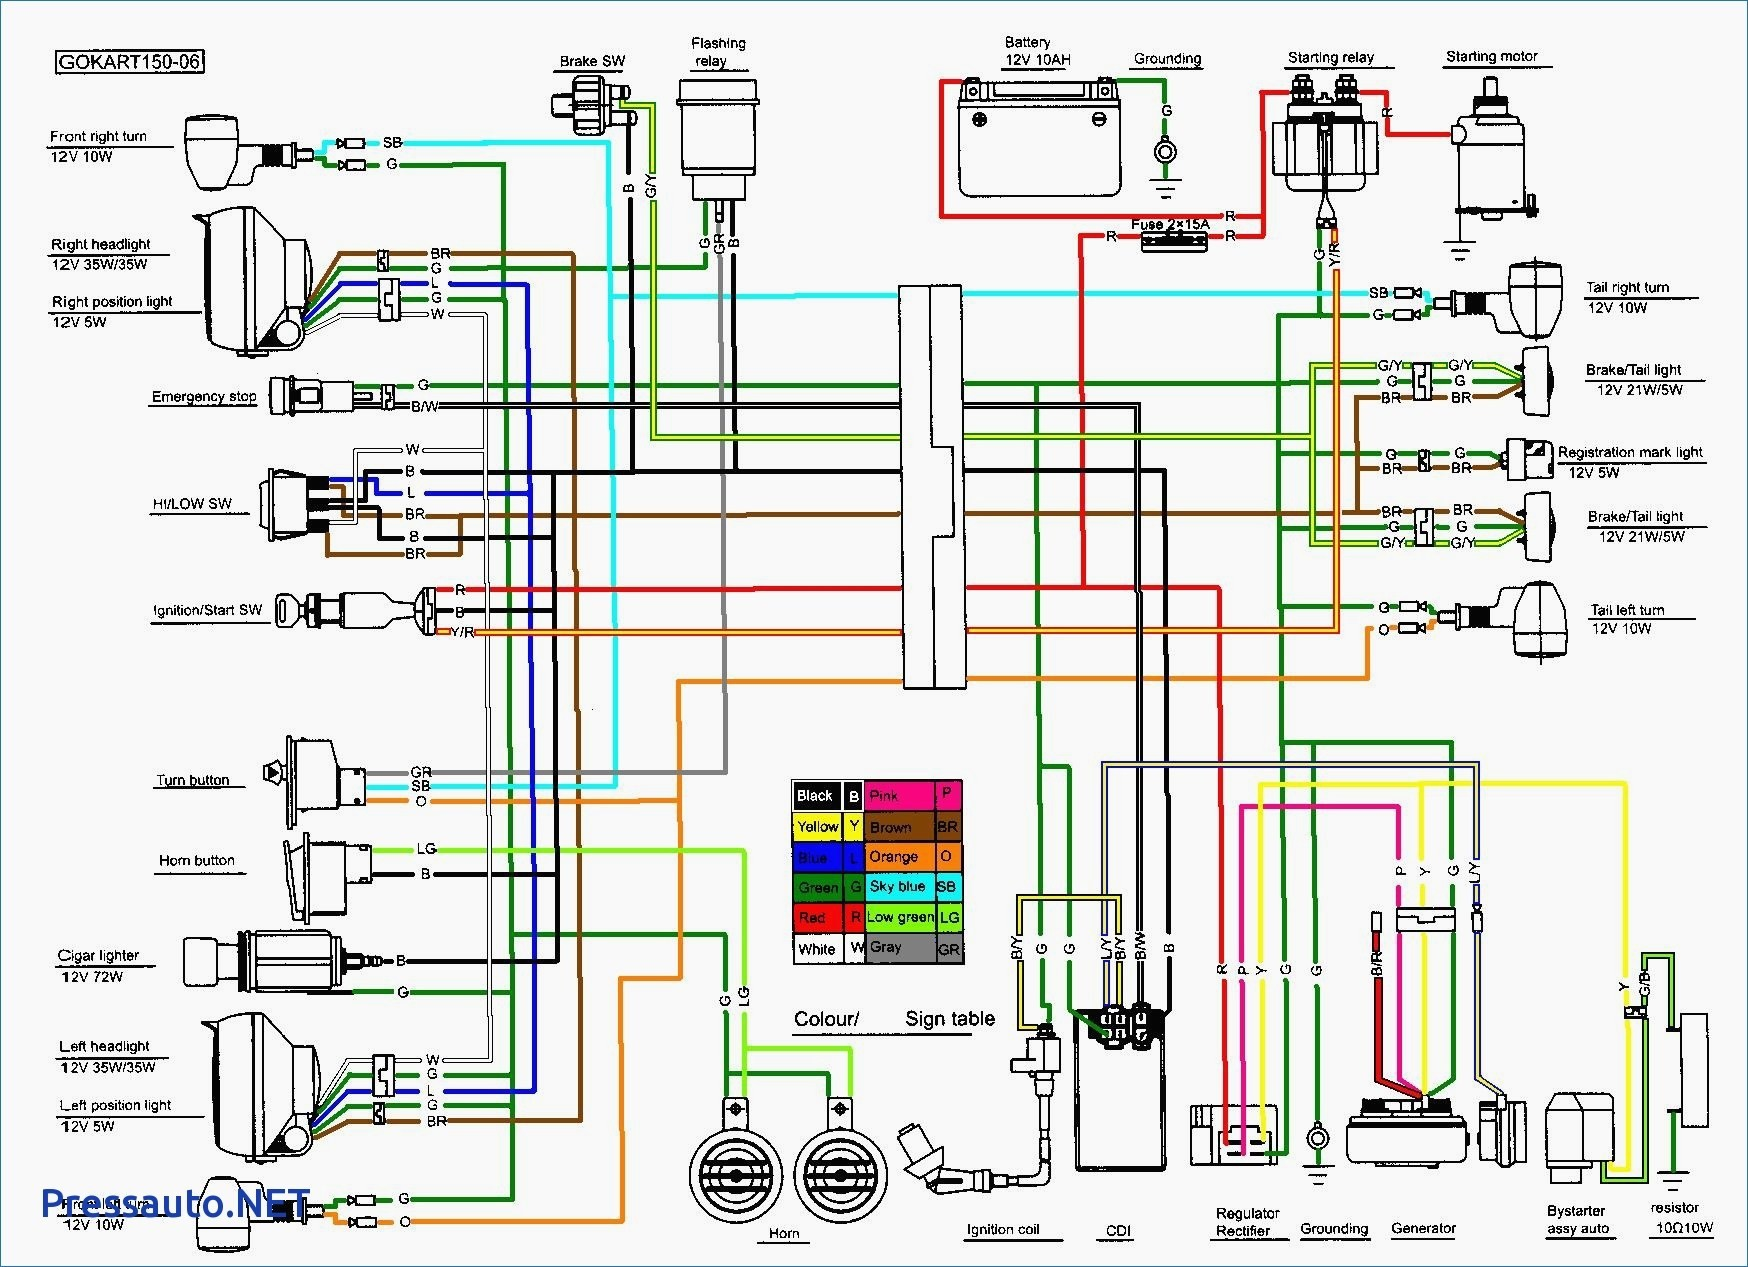 DIAGRAM] Chinese Atv Wiring Diagram 2010 FULL Version HD Quality Diagram  2010 - VOLCANODIAGRAMS.COLLECTION-PAULETTE.FRvolcanodiagrams.collection-paulette.fr